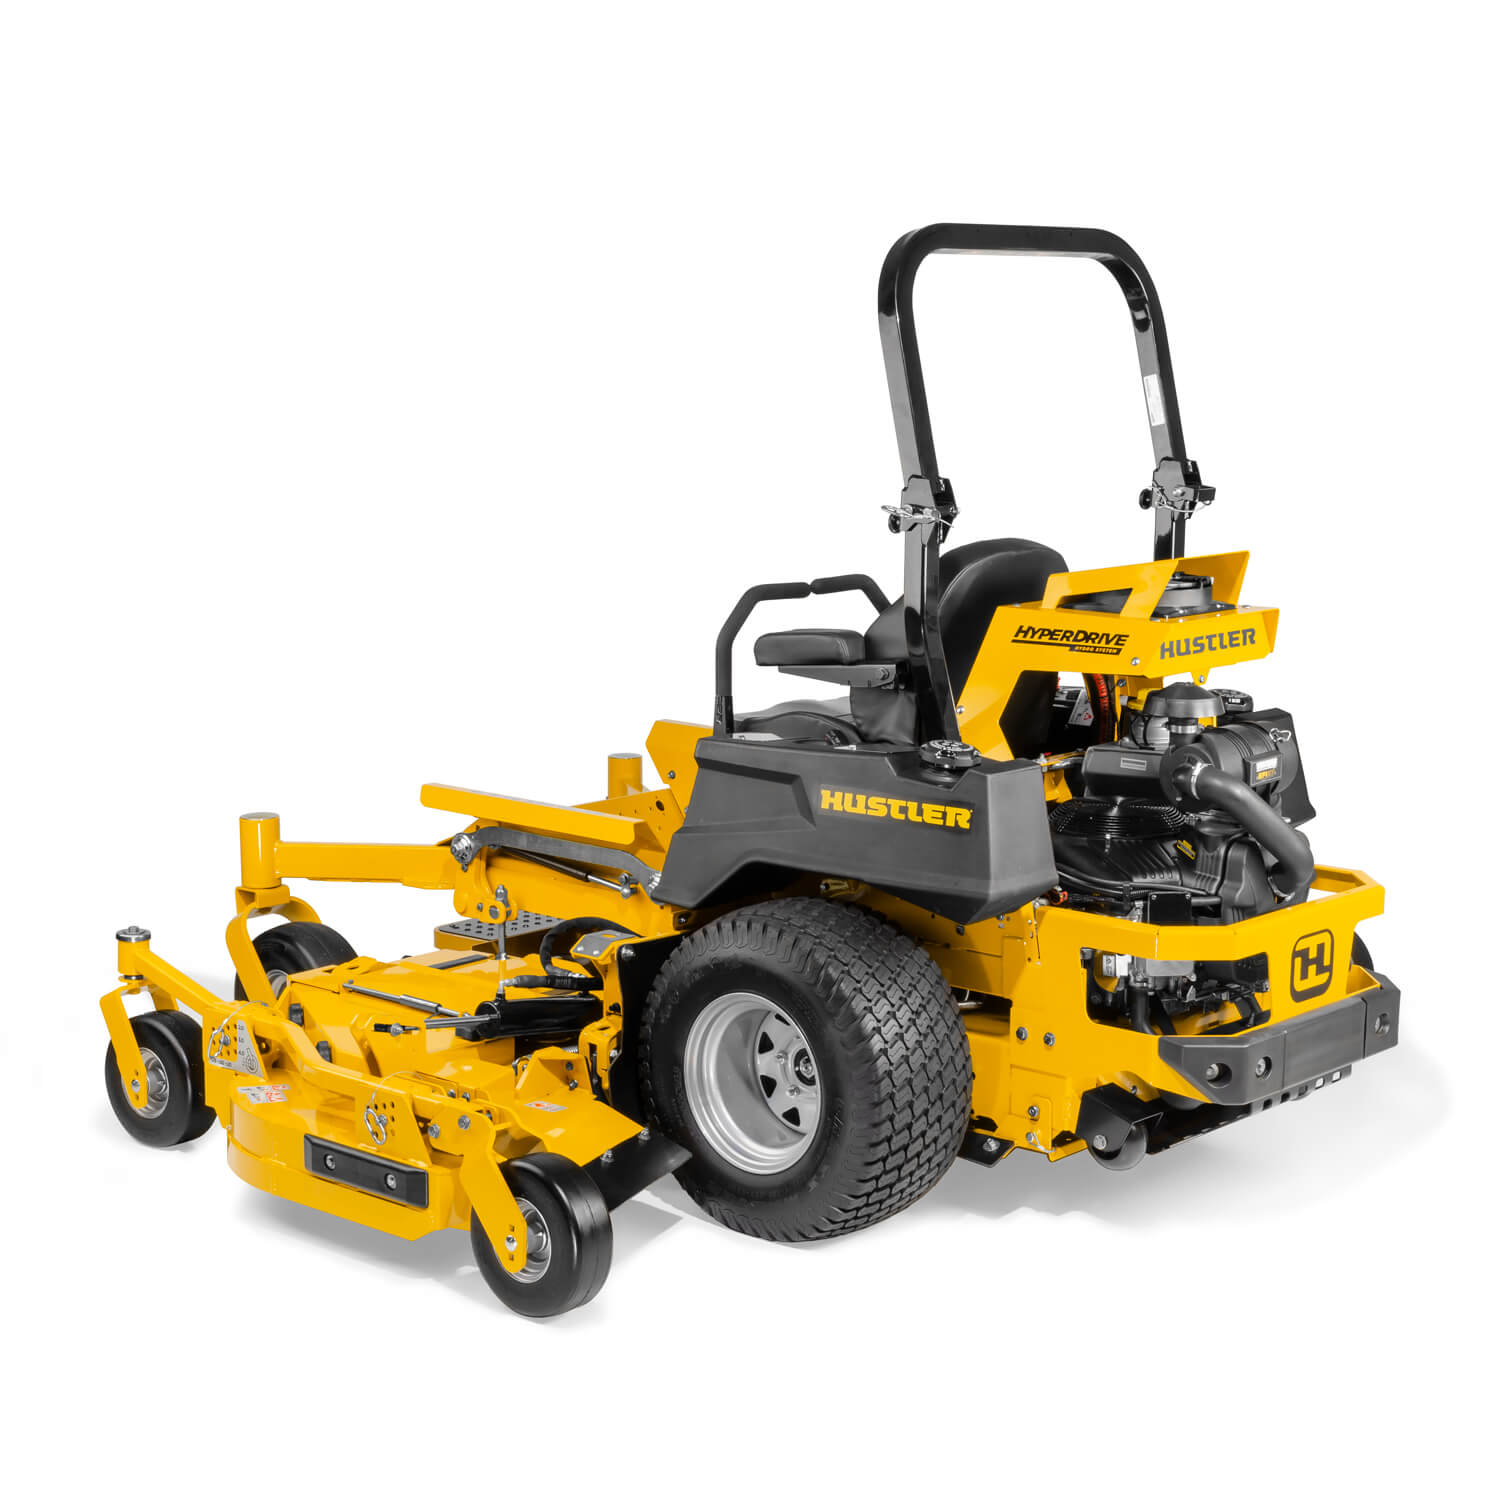 Image of the rear three quarters of a yellow zero-turn mower